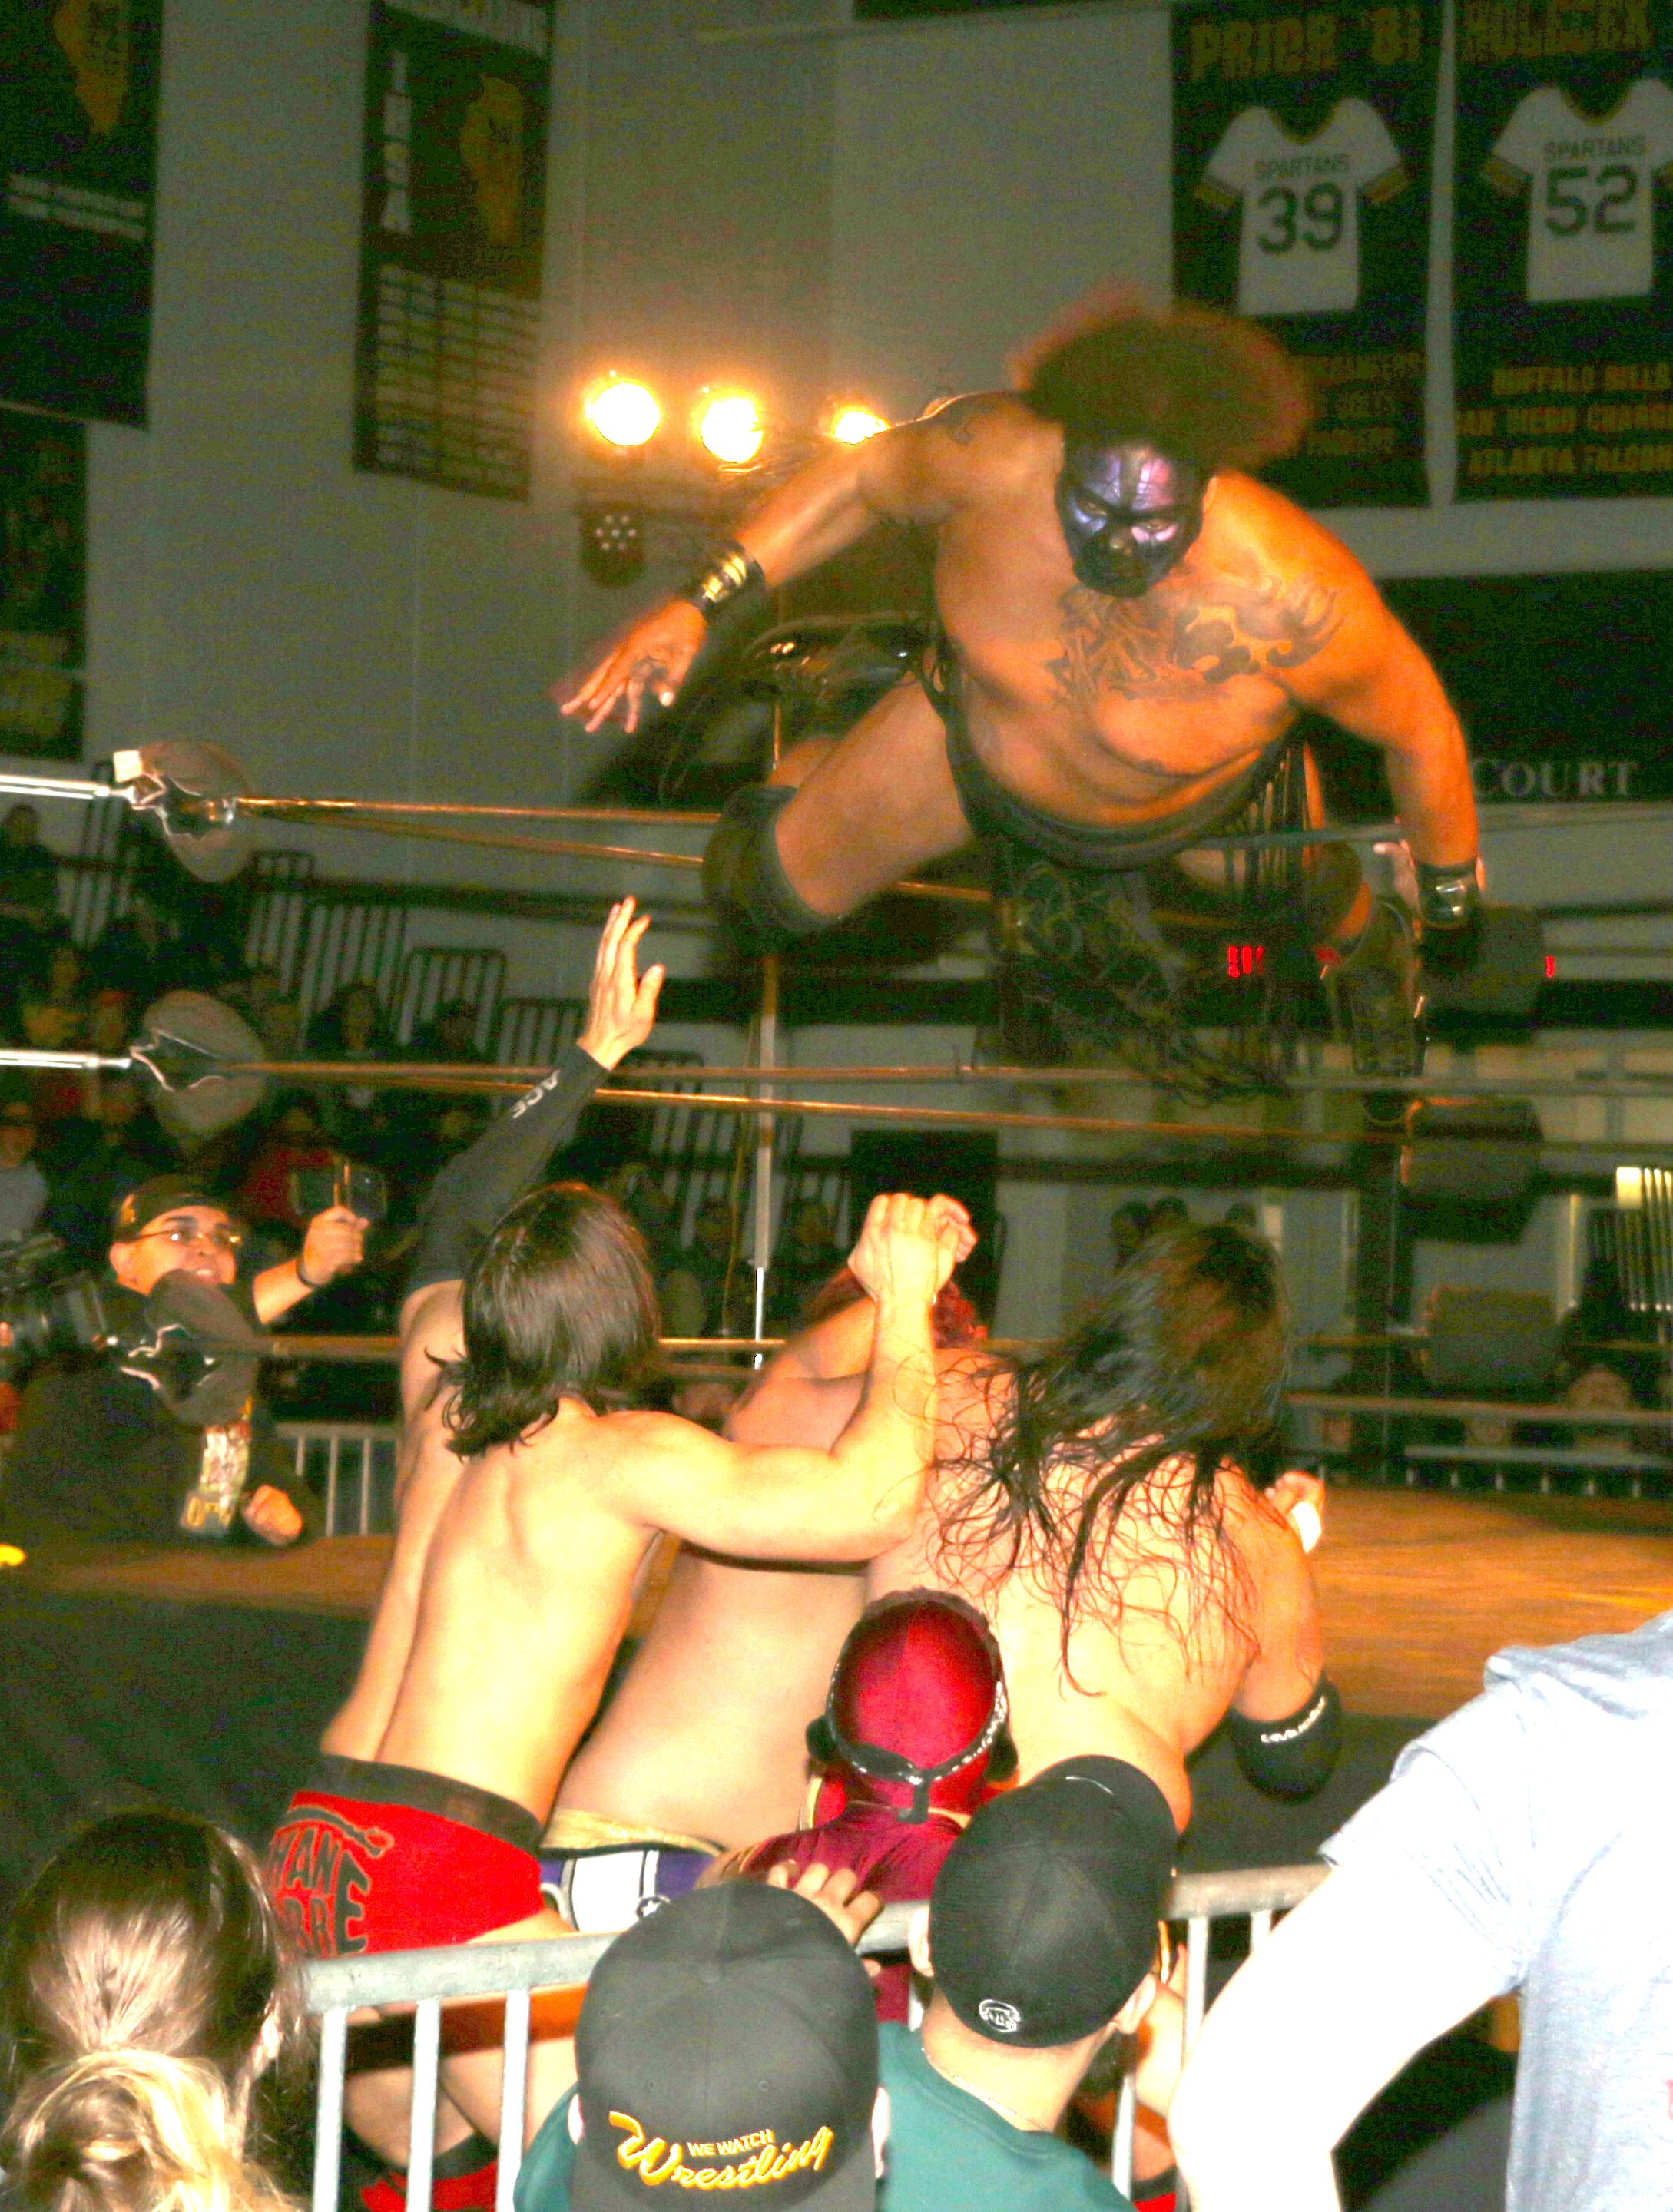 Air Kong: Kongo Kong dives through the ropes onto his opponents during the three-way tag team match.